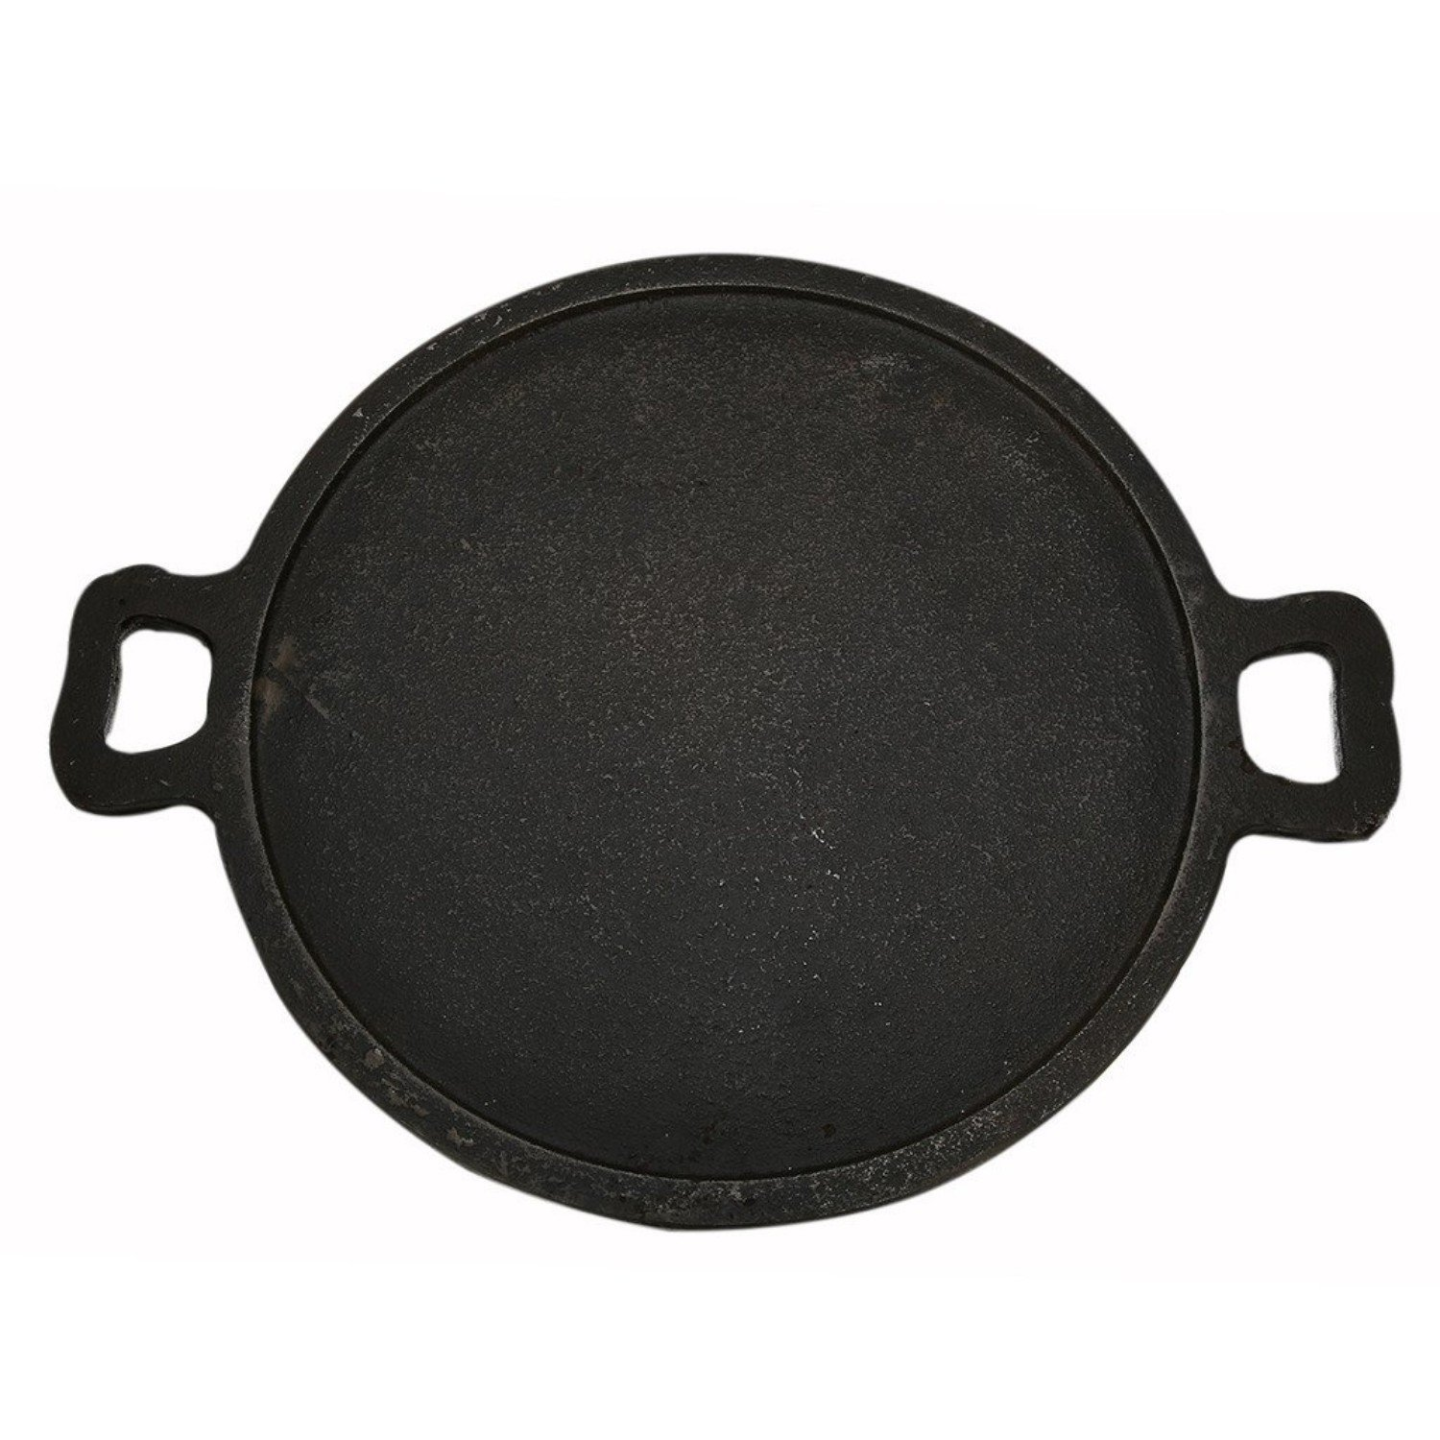 Cast Iron Preseasoned Dosa Tawa Pan 100% Pure